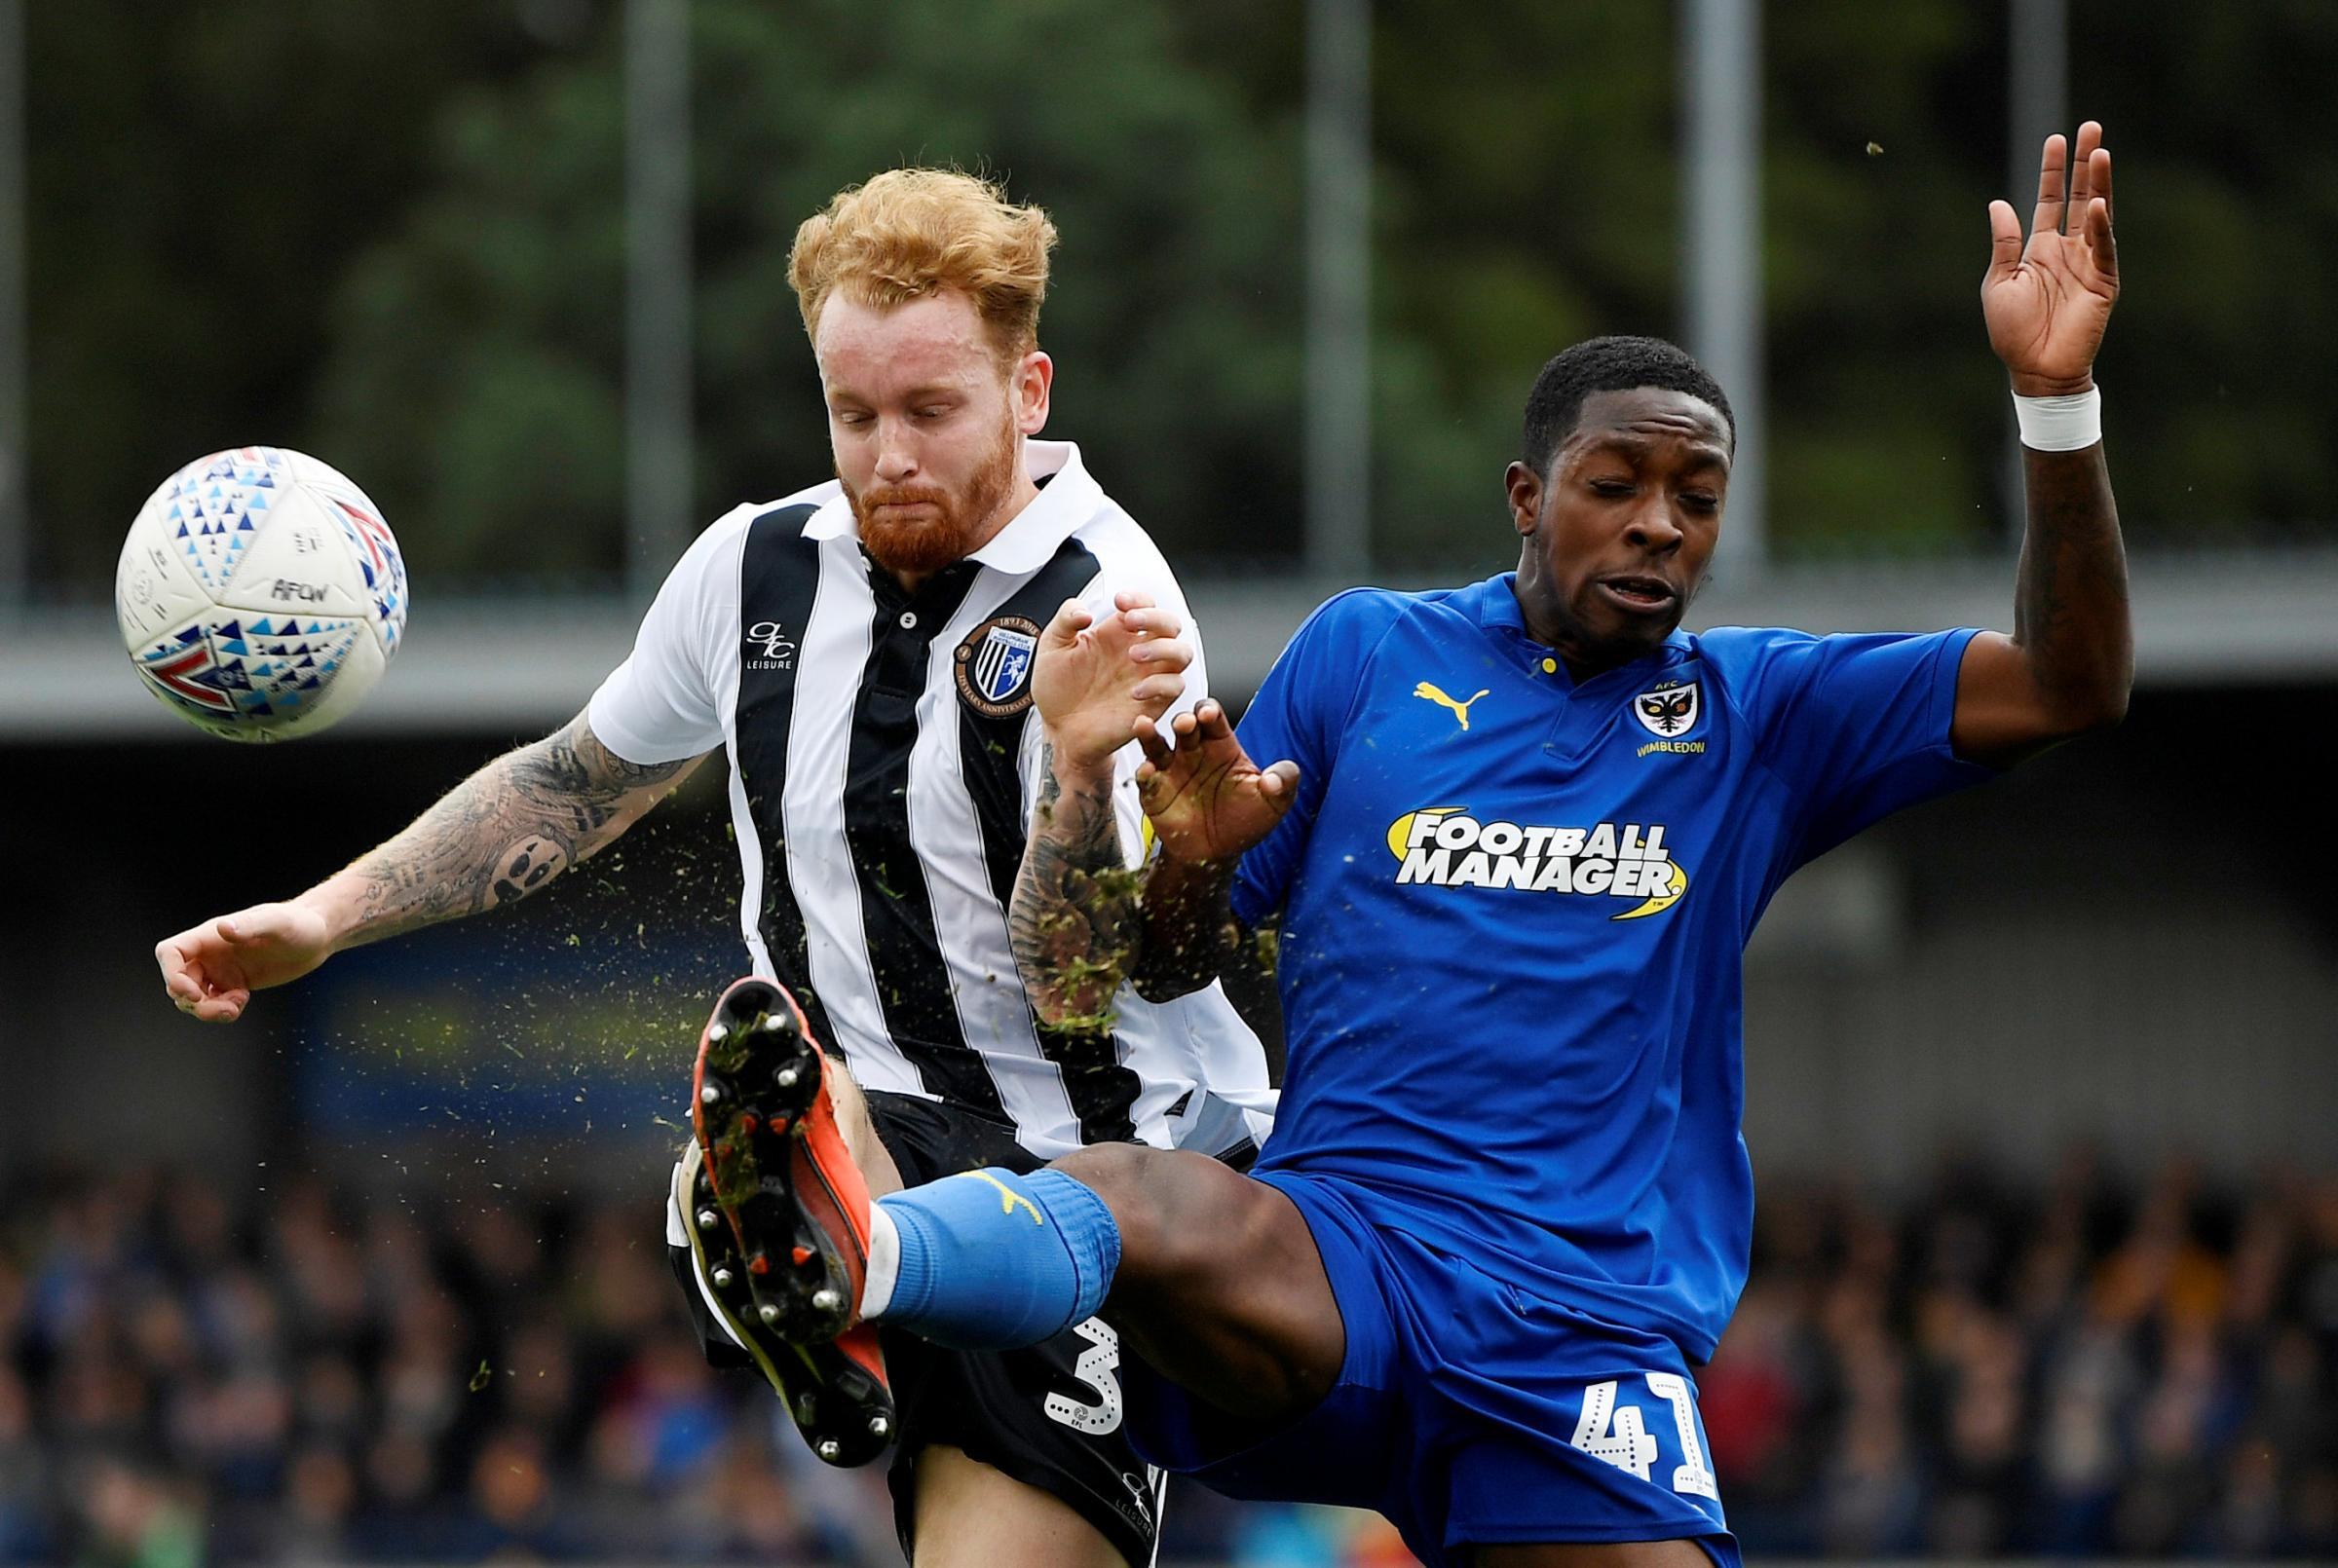 Michael Folivi scores for AFC Wimbledon hours after loan from Watford is confirmed